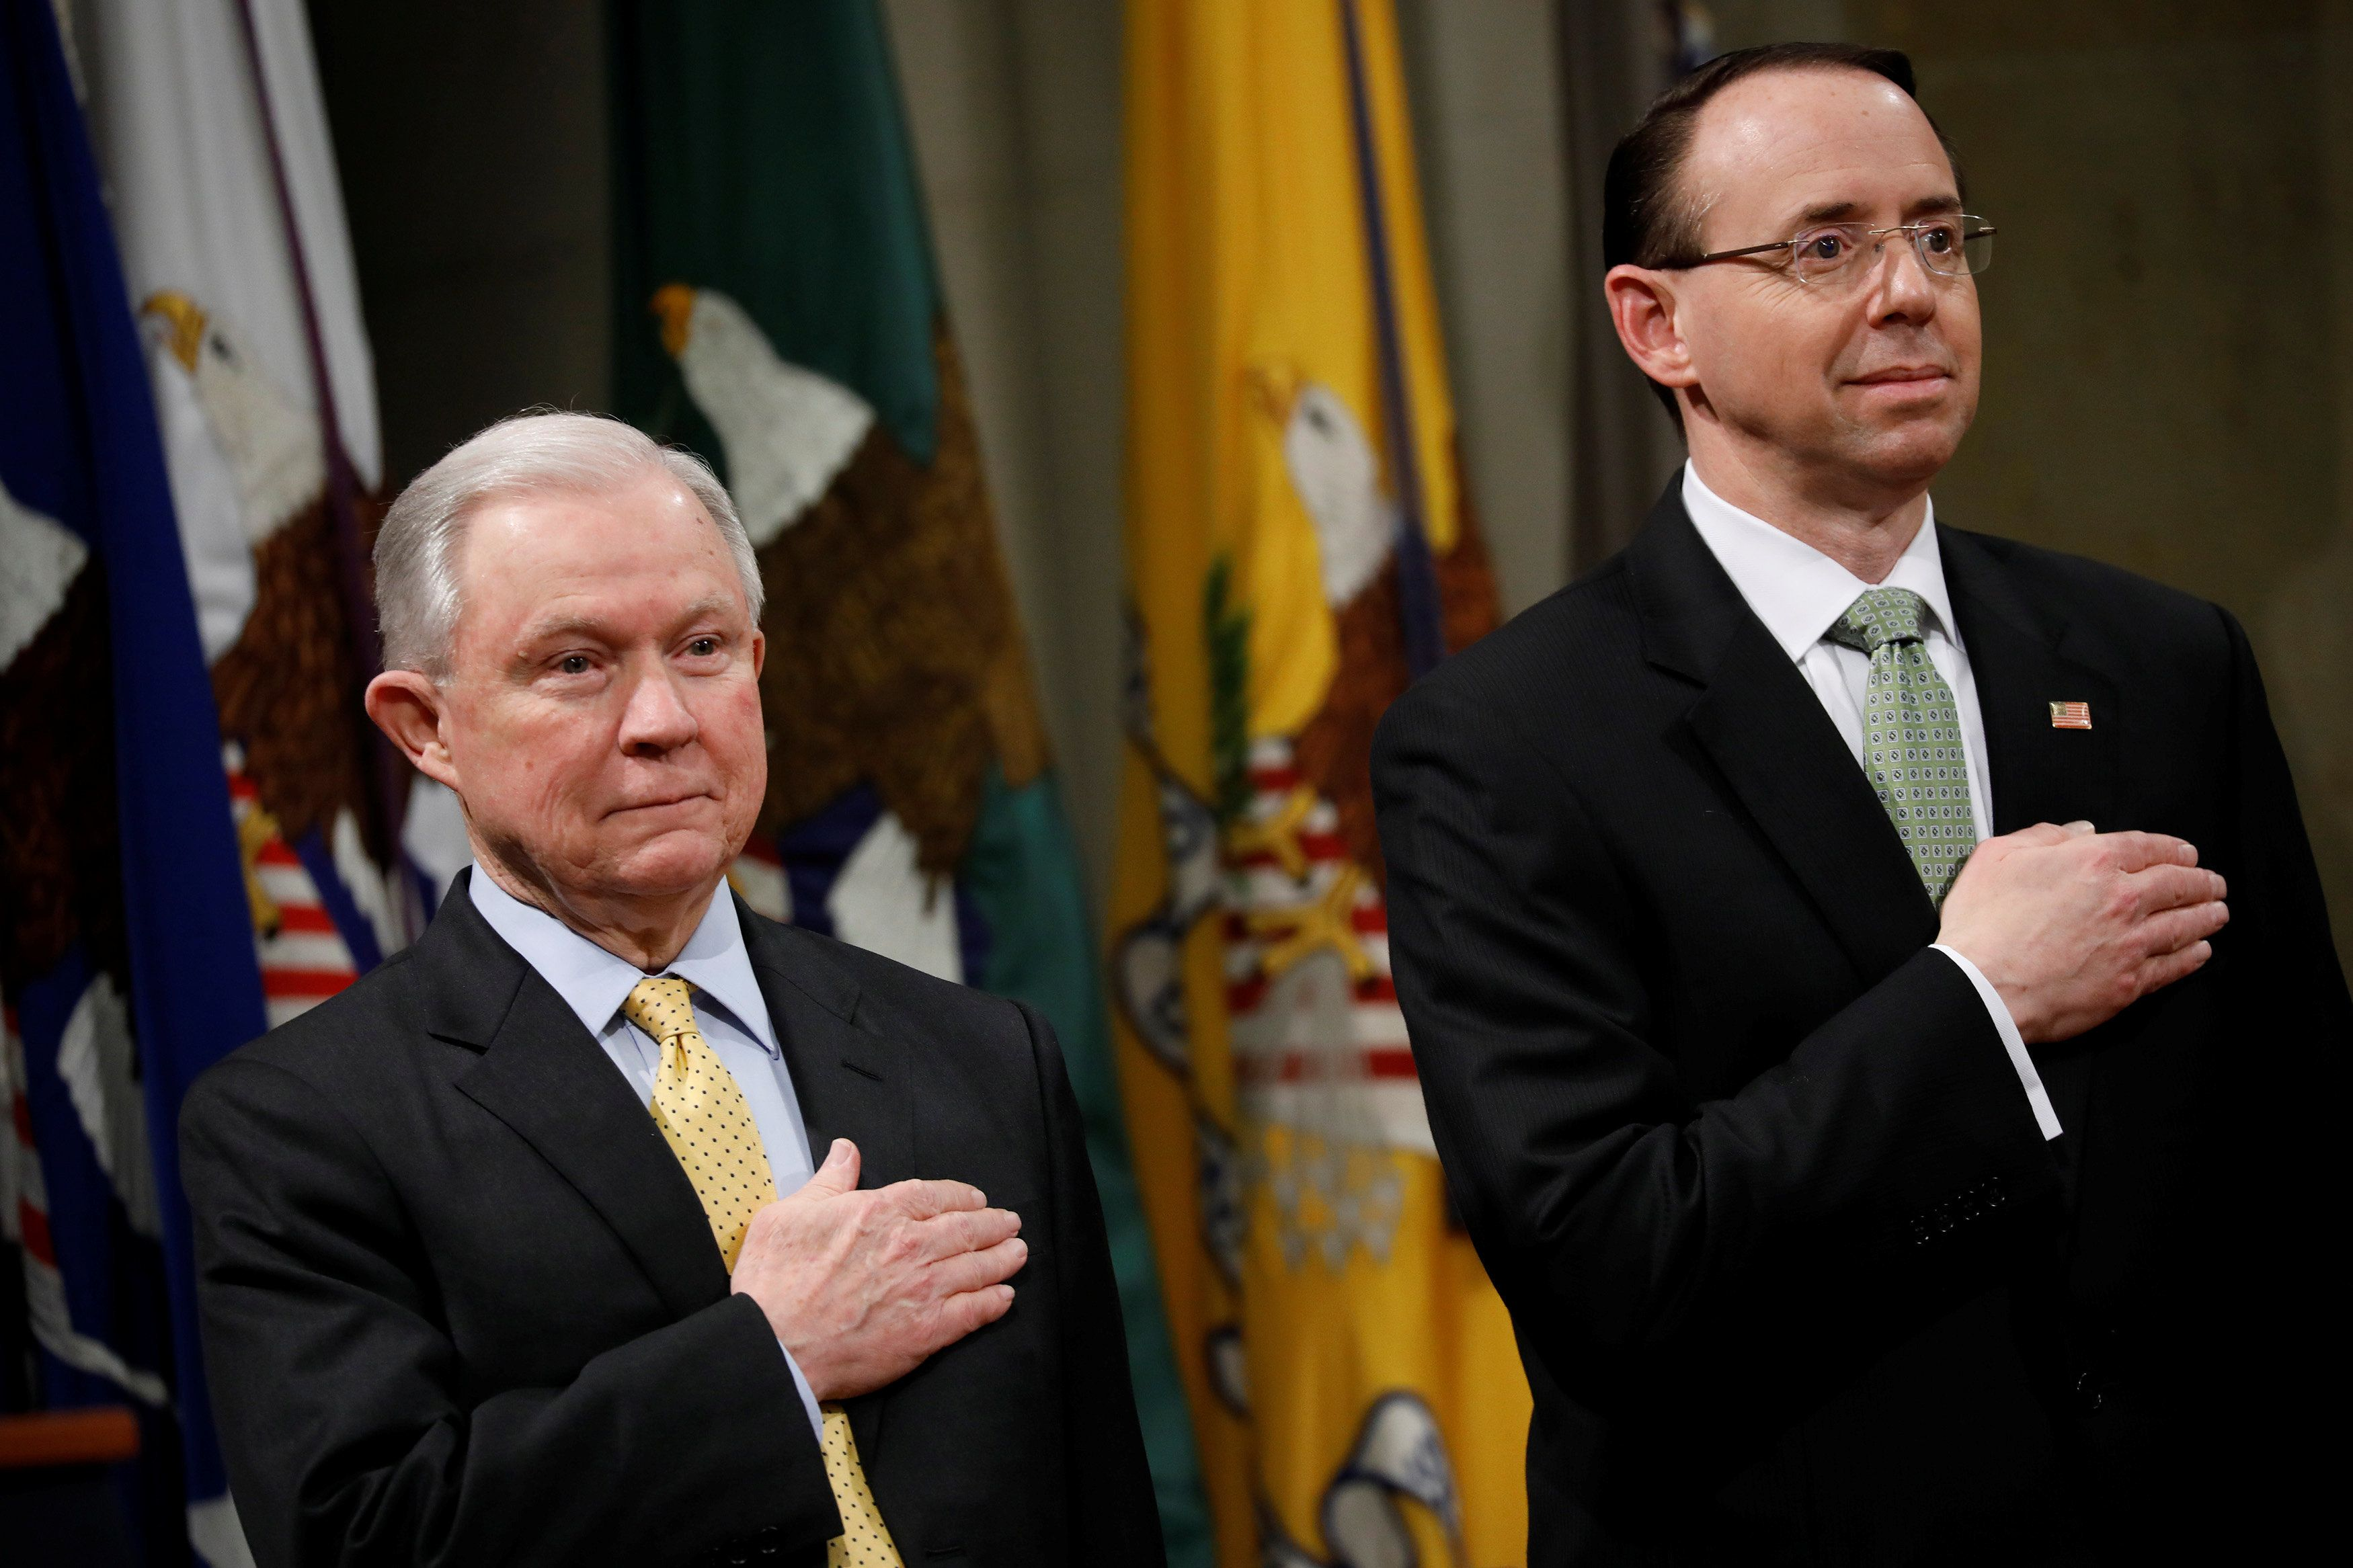 United States Attorney General Jeff Sessions (L) and Deputy Attorney General Rod Rosenstein stand for the pledge of allegiance at a summit about combating human trafficking at the Department of Justice in Washington, U.S., February 2, 2018. REUTERS/Aaron P. Bernstein